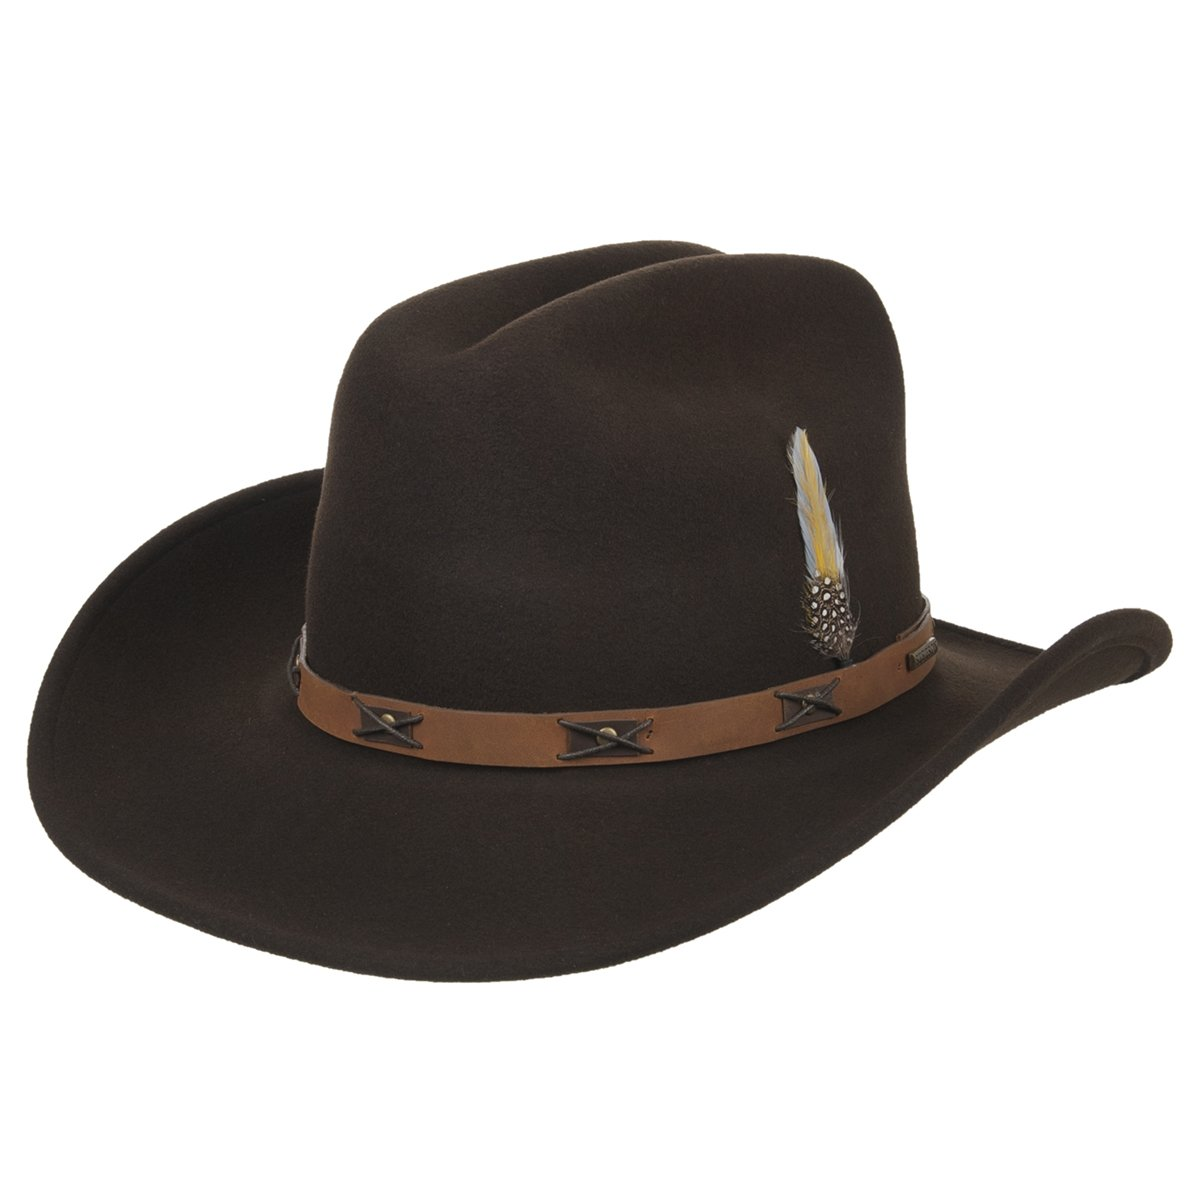 mans hat Victorville by Stetson 5cea27bf991